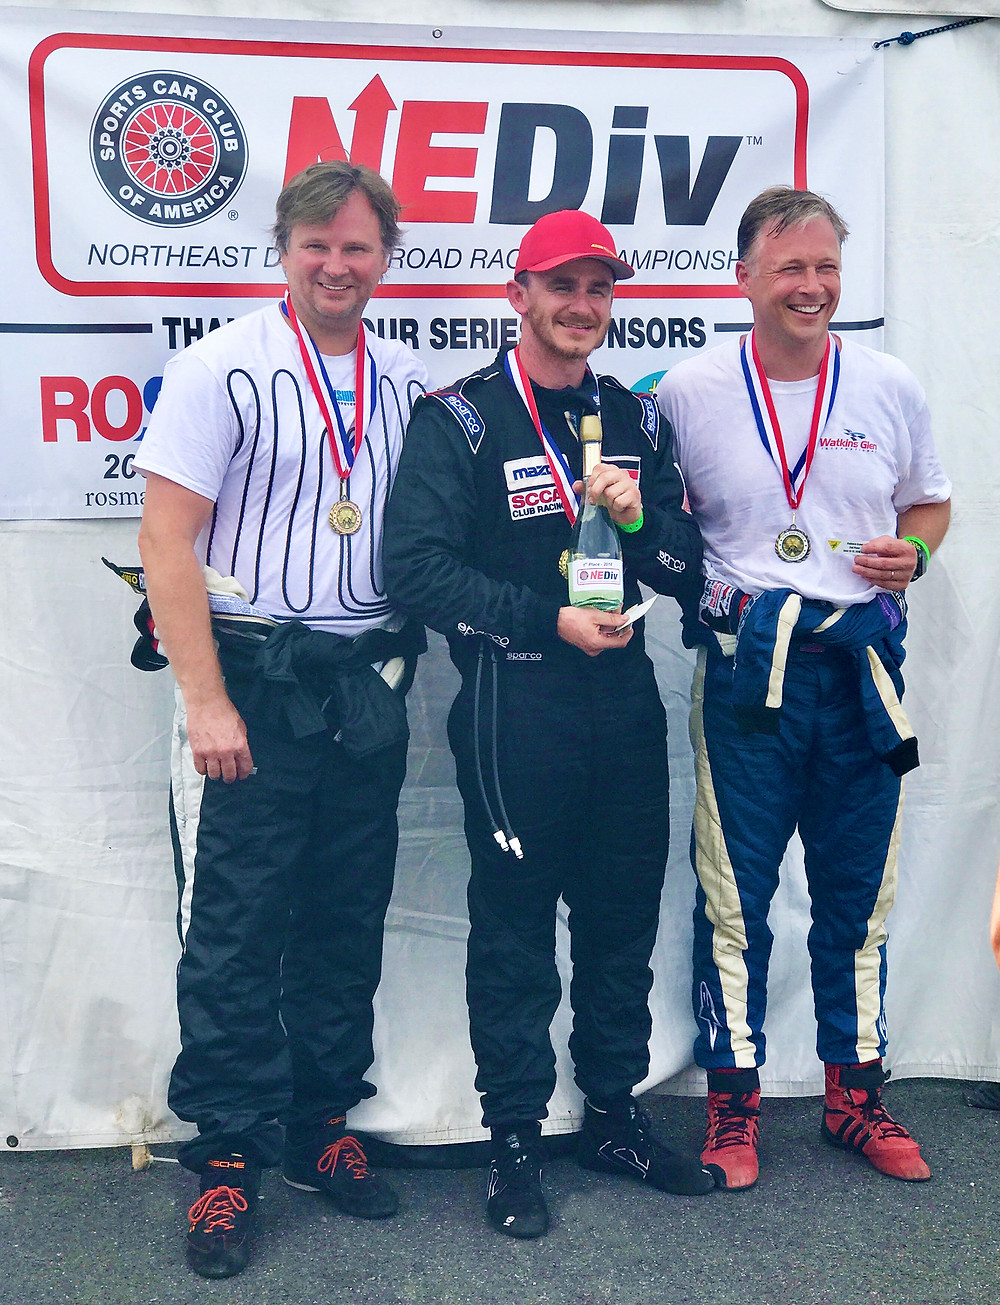 Picture of Winners of SCCA NE Division